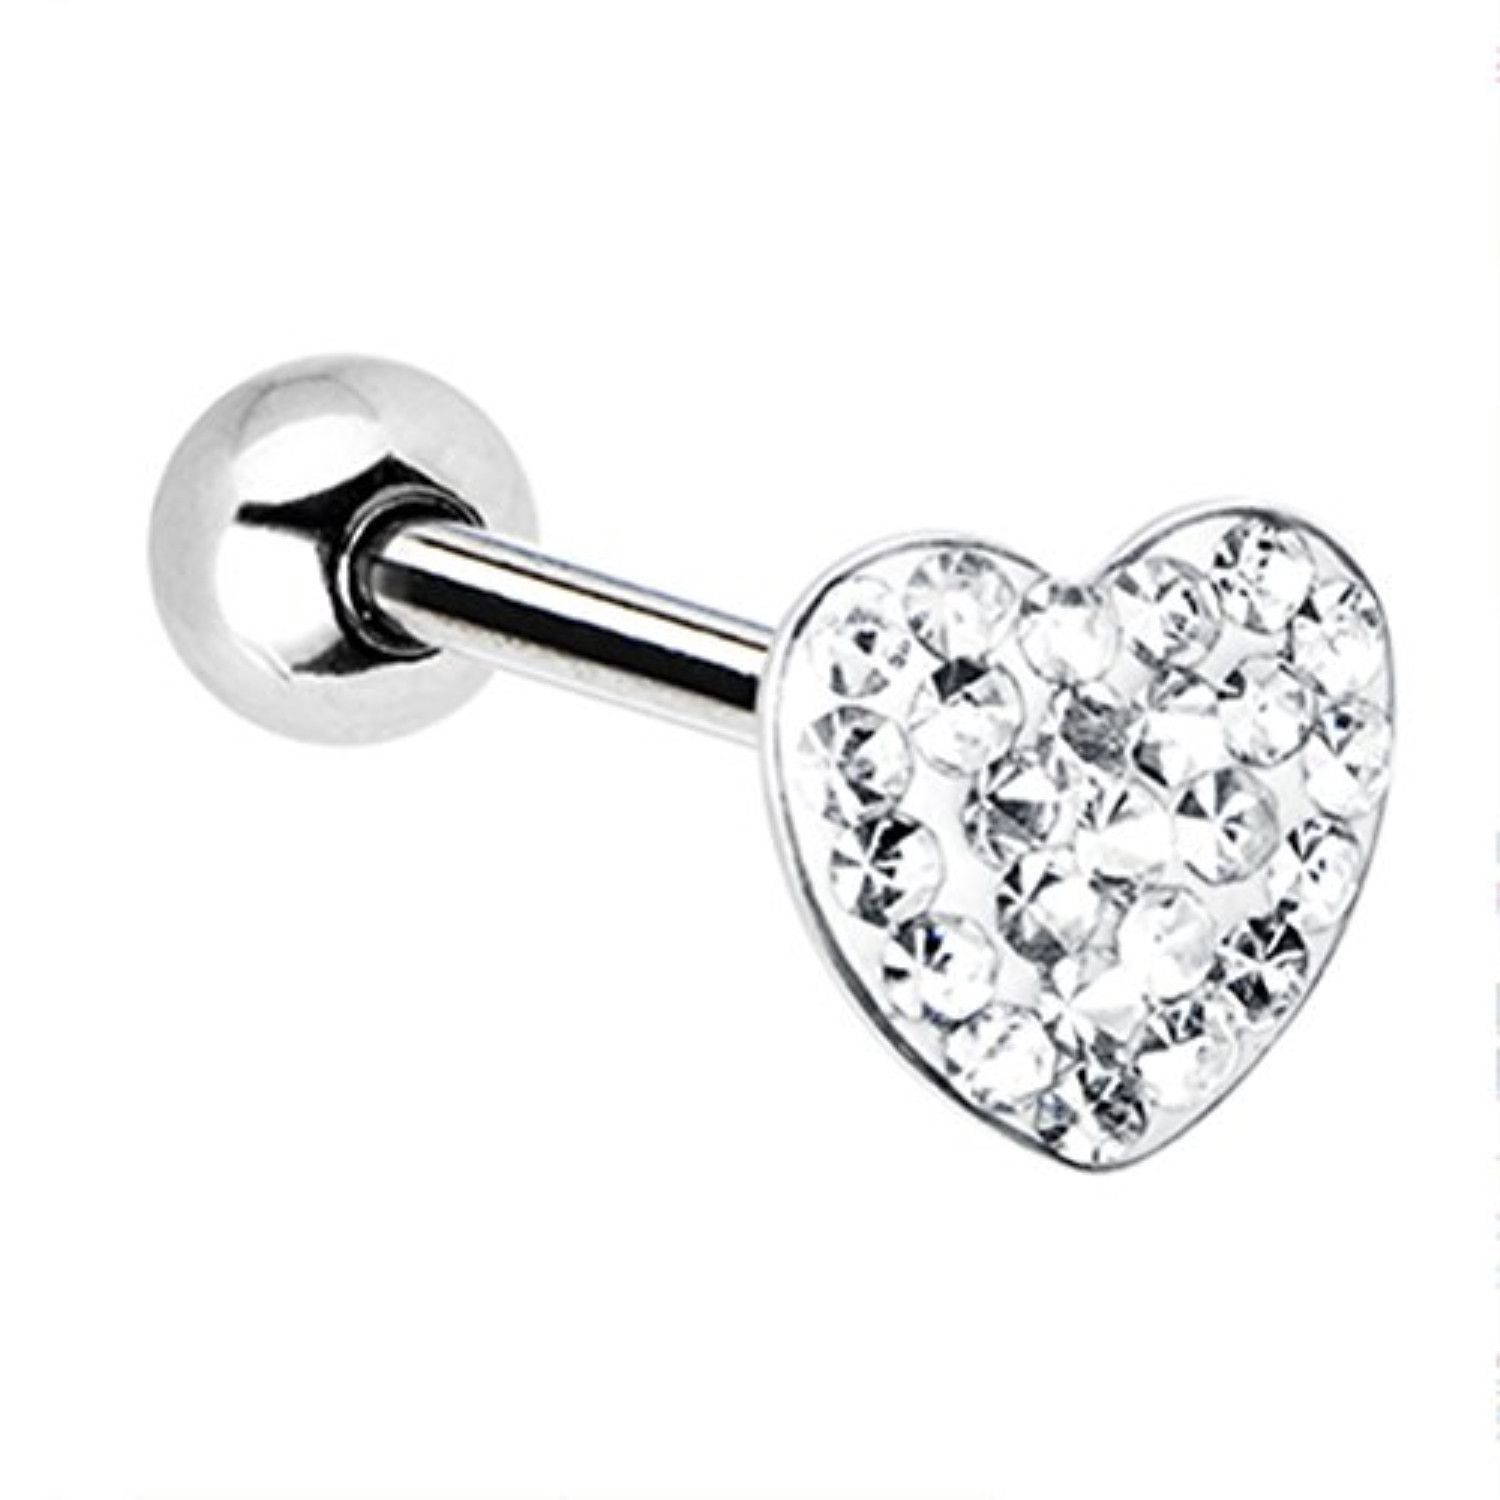 Tongue piercing areas  Dome Clear Heart Gem Barbell Tongue Ring G Jewelry  Products